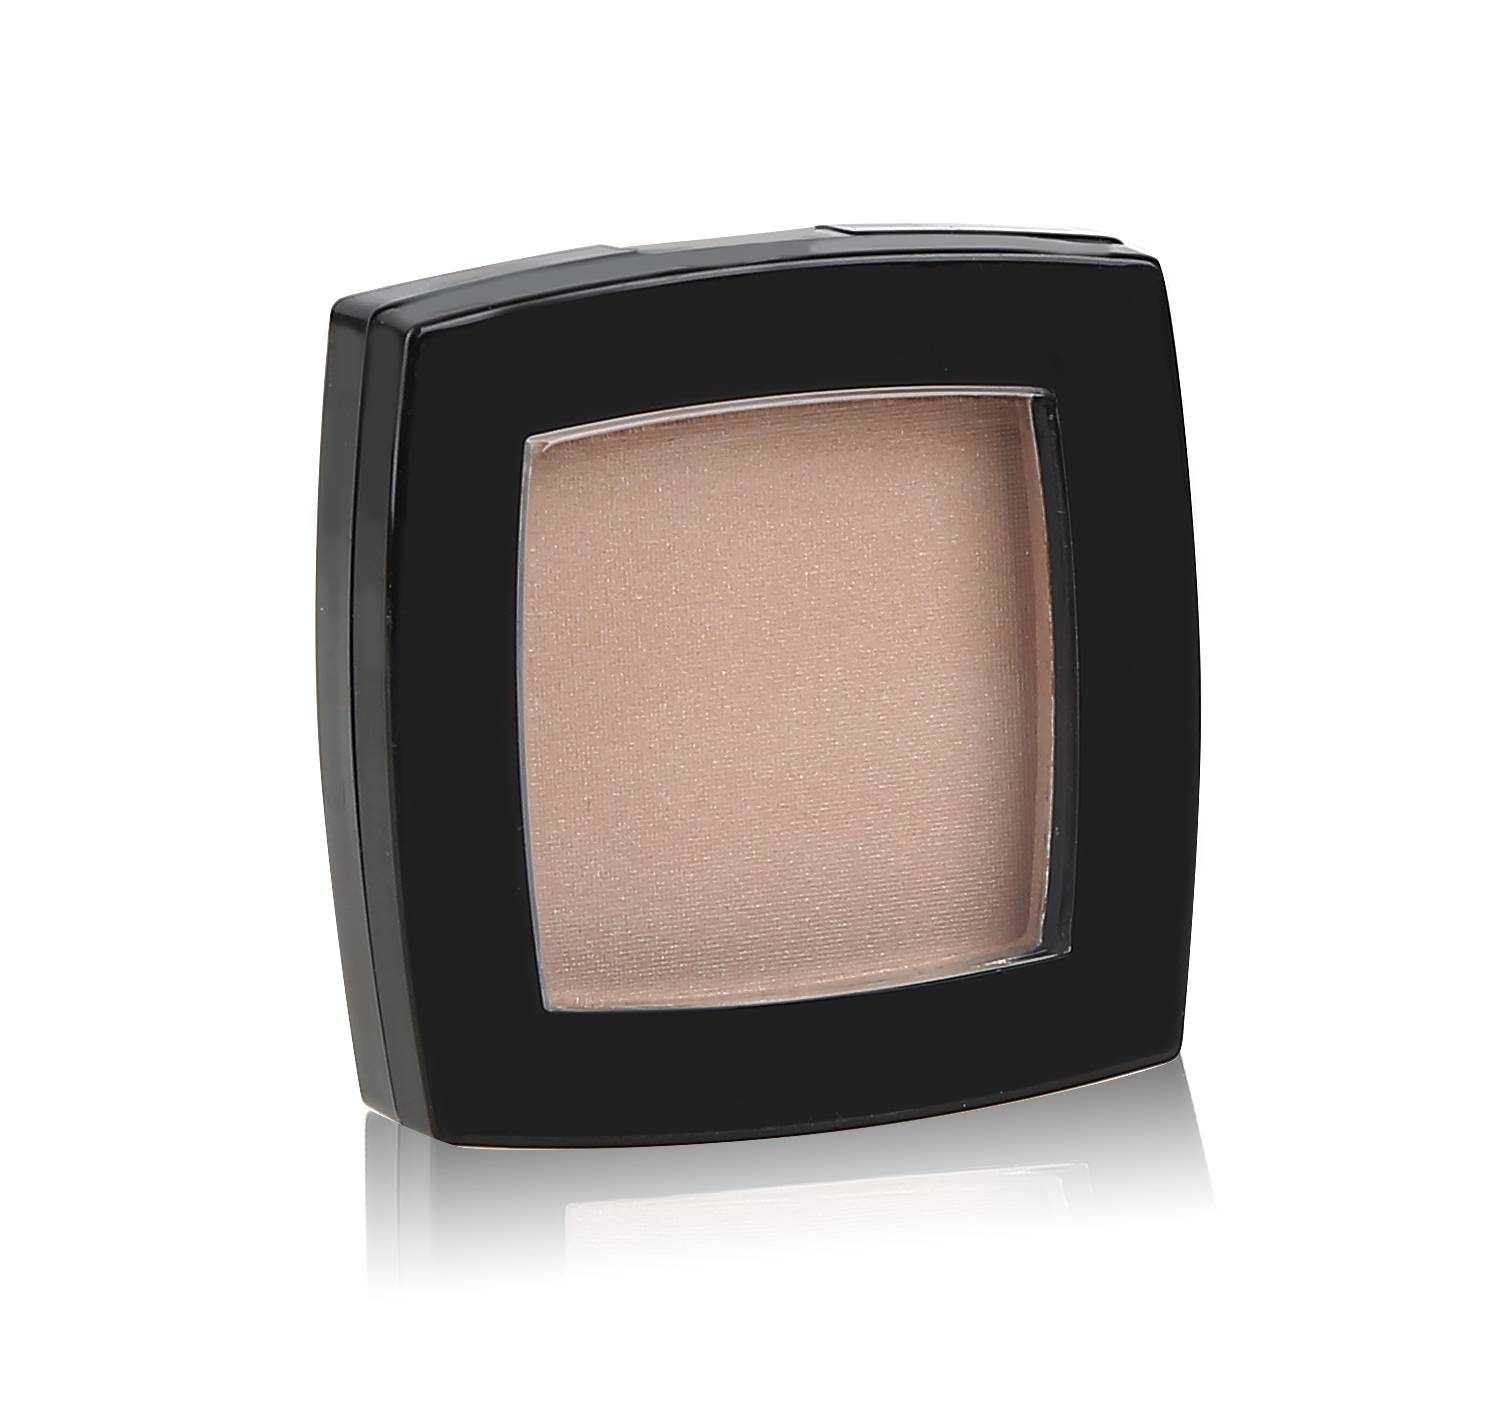 Single Matte Color Compact Powder